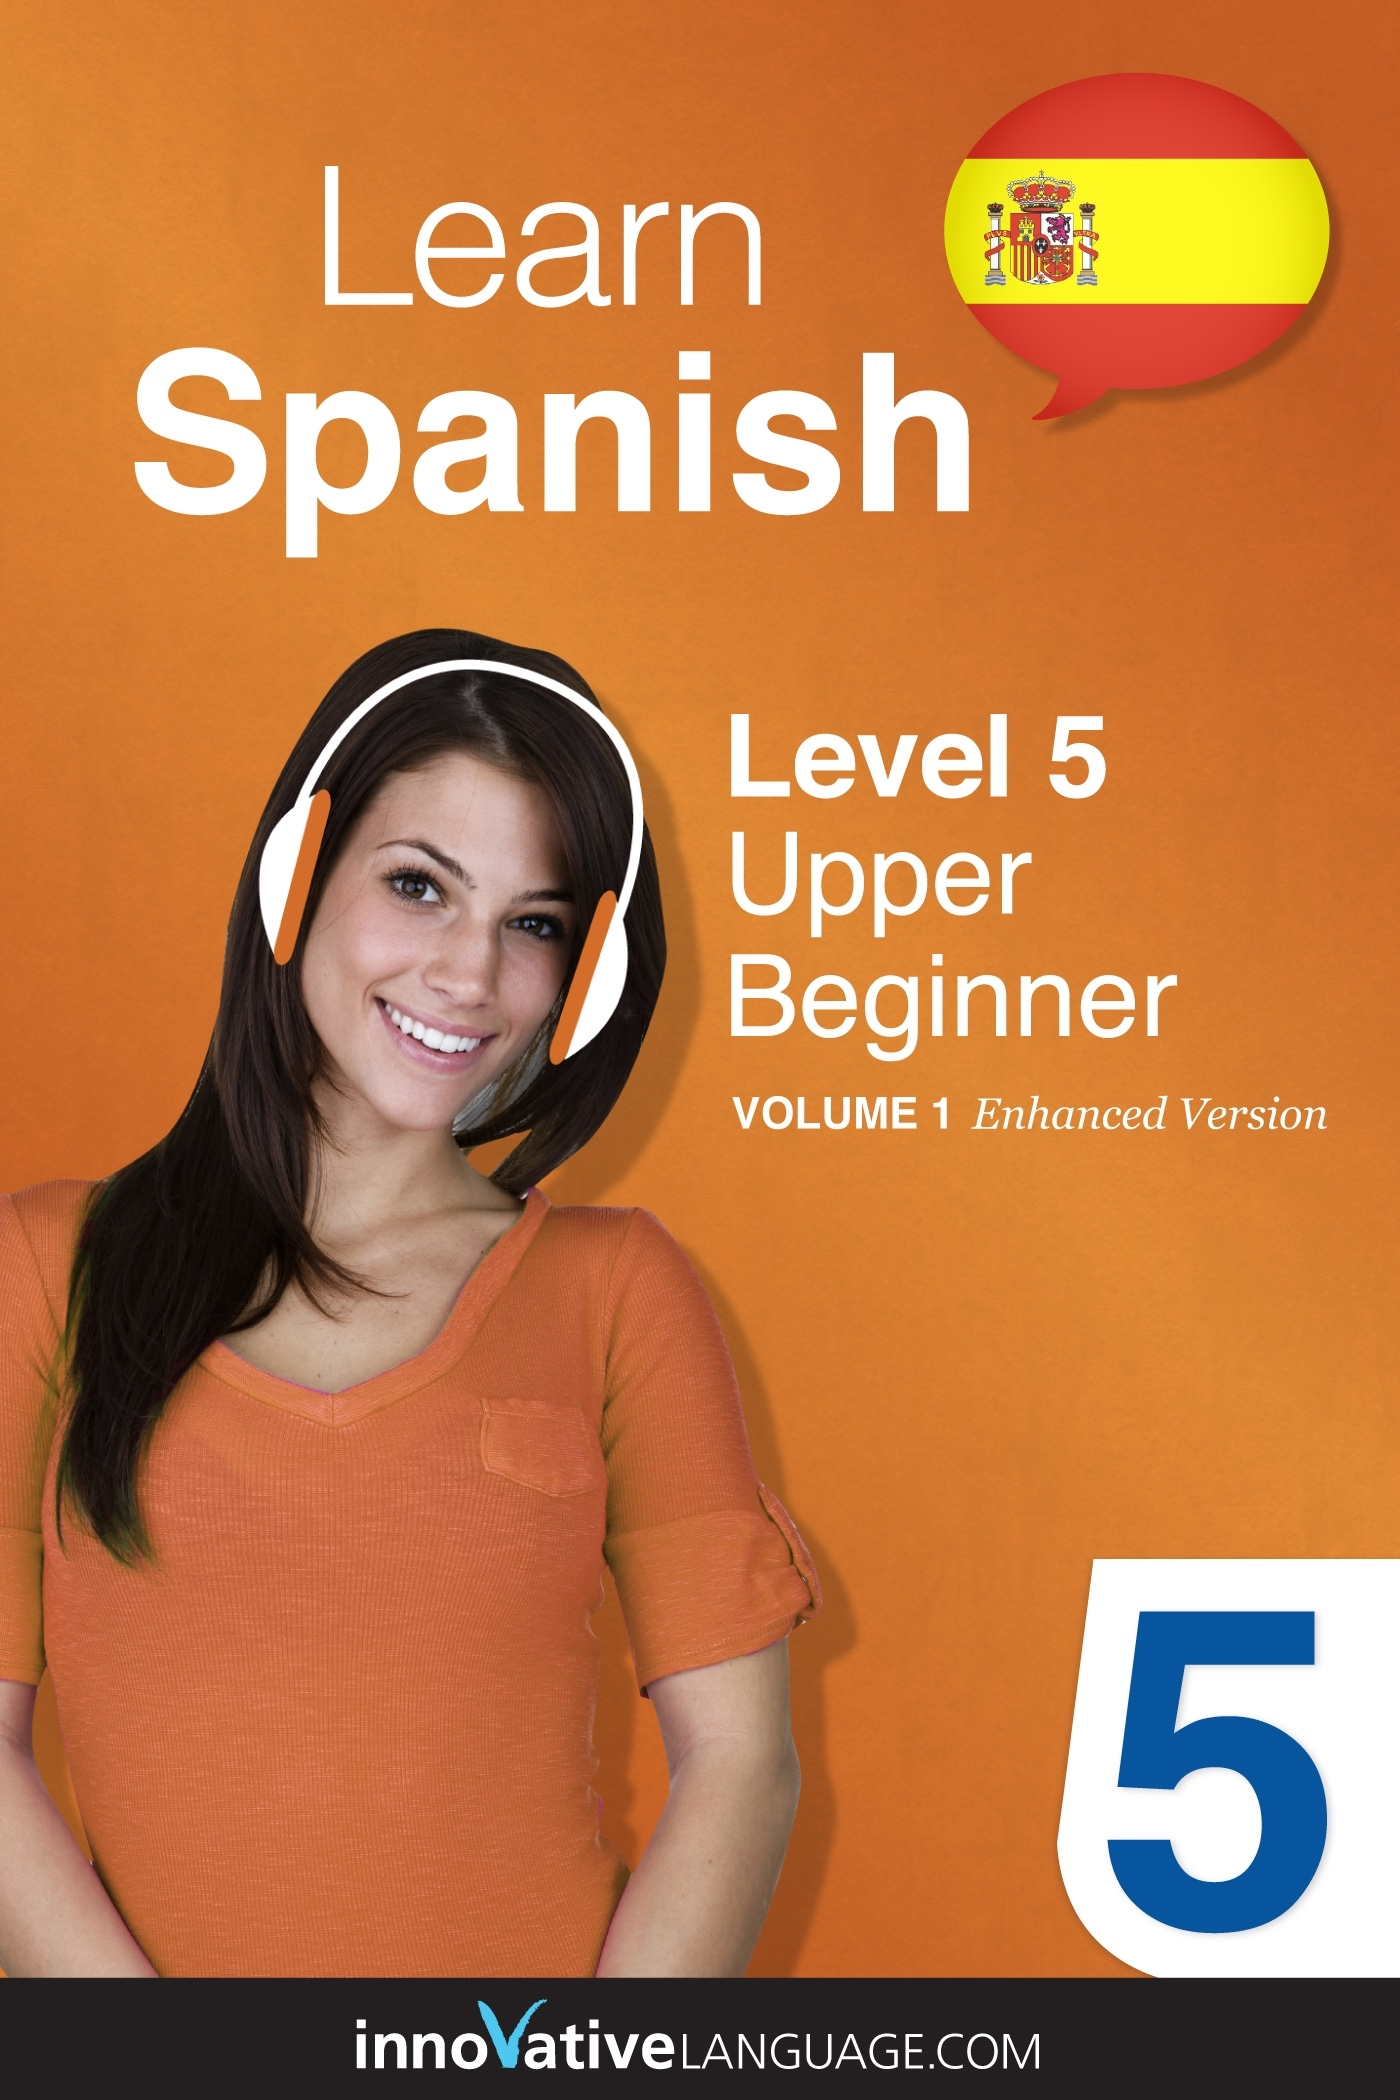 [eBook] Learn Spanish - Level 5: Upper Beginner